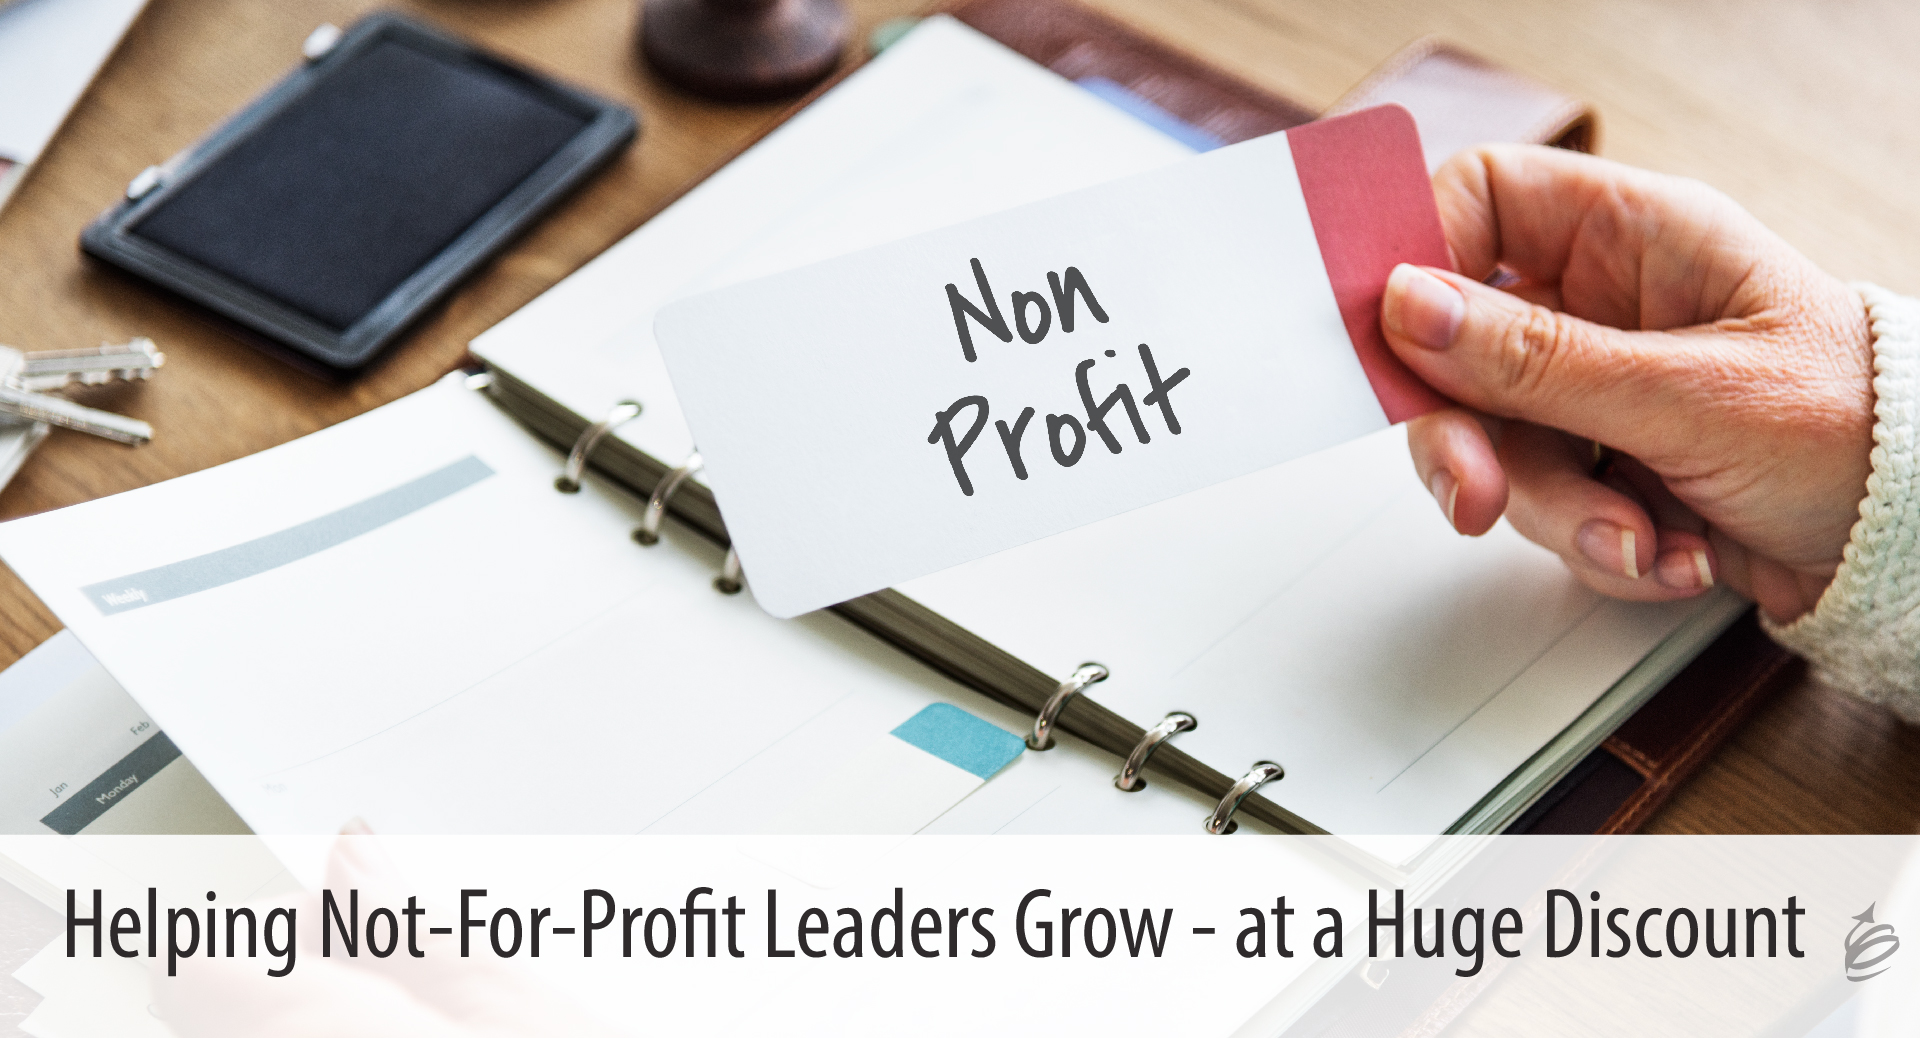 not-for-profit leader